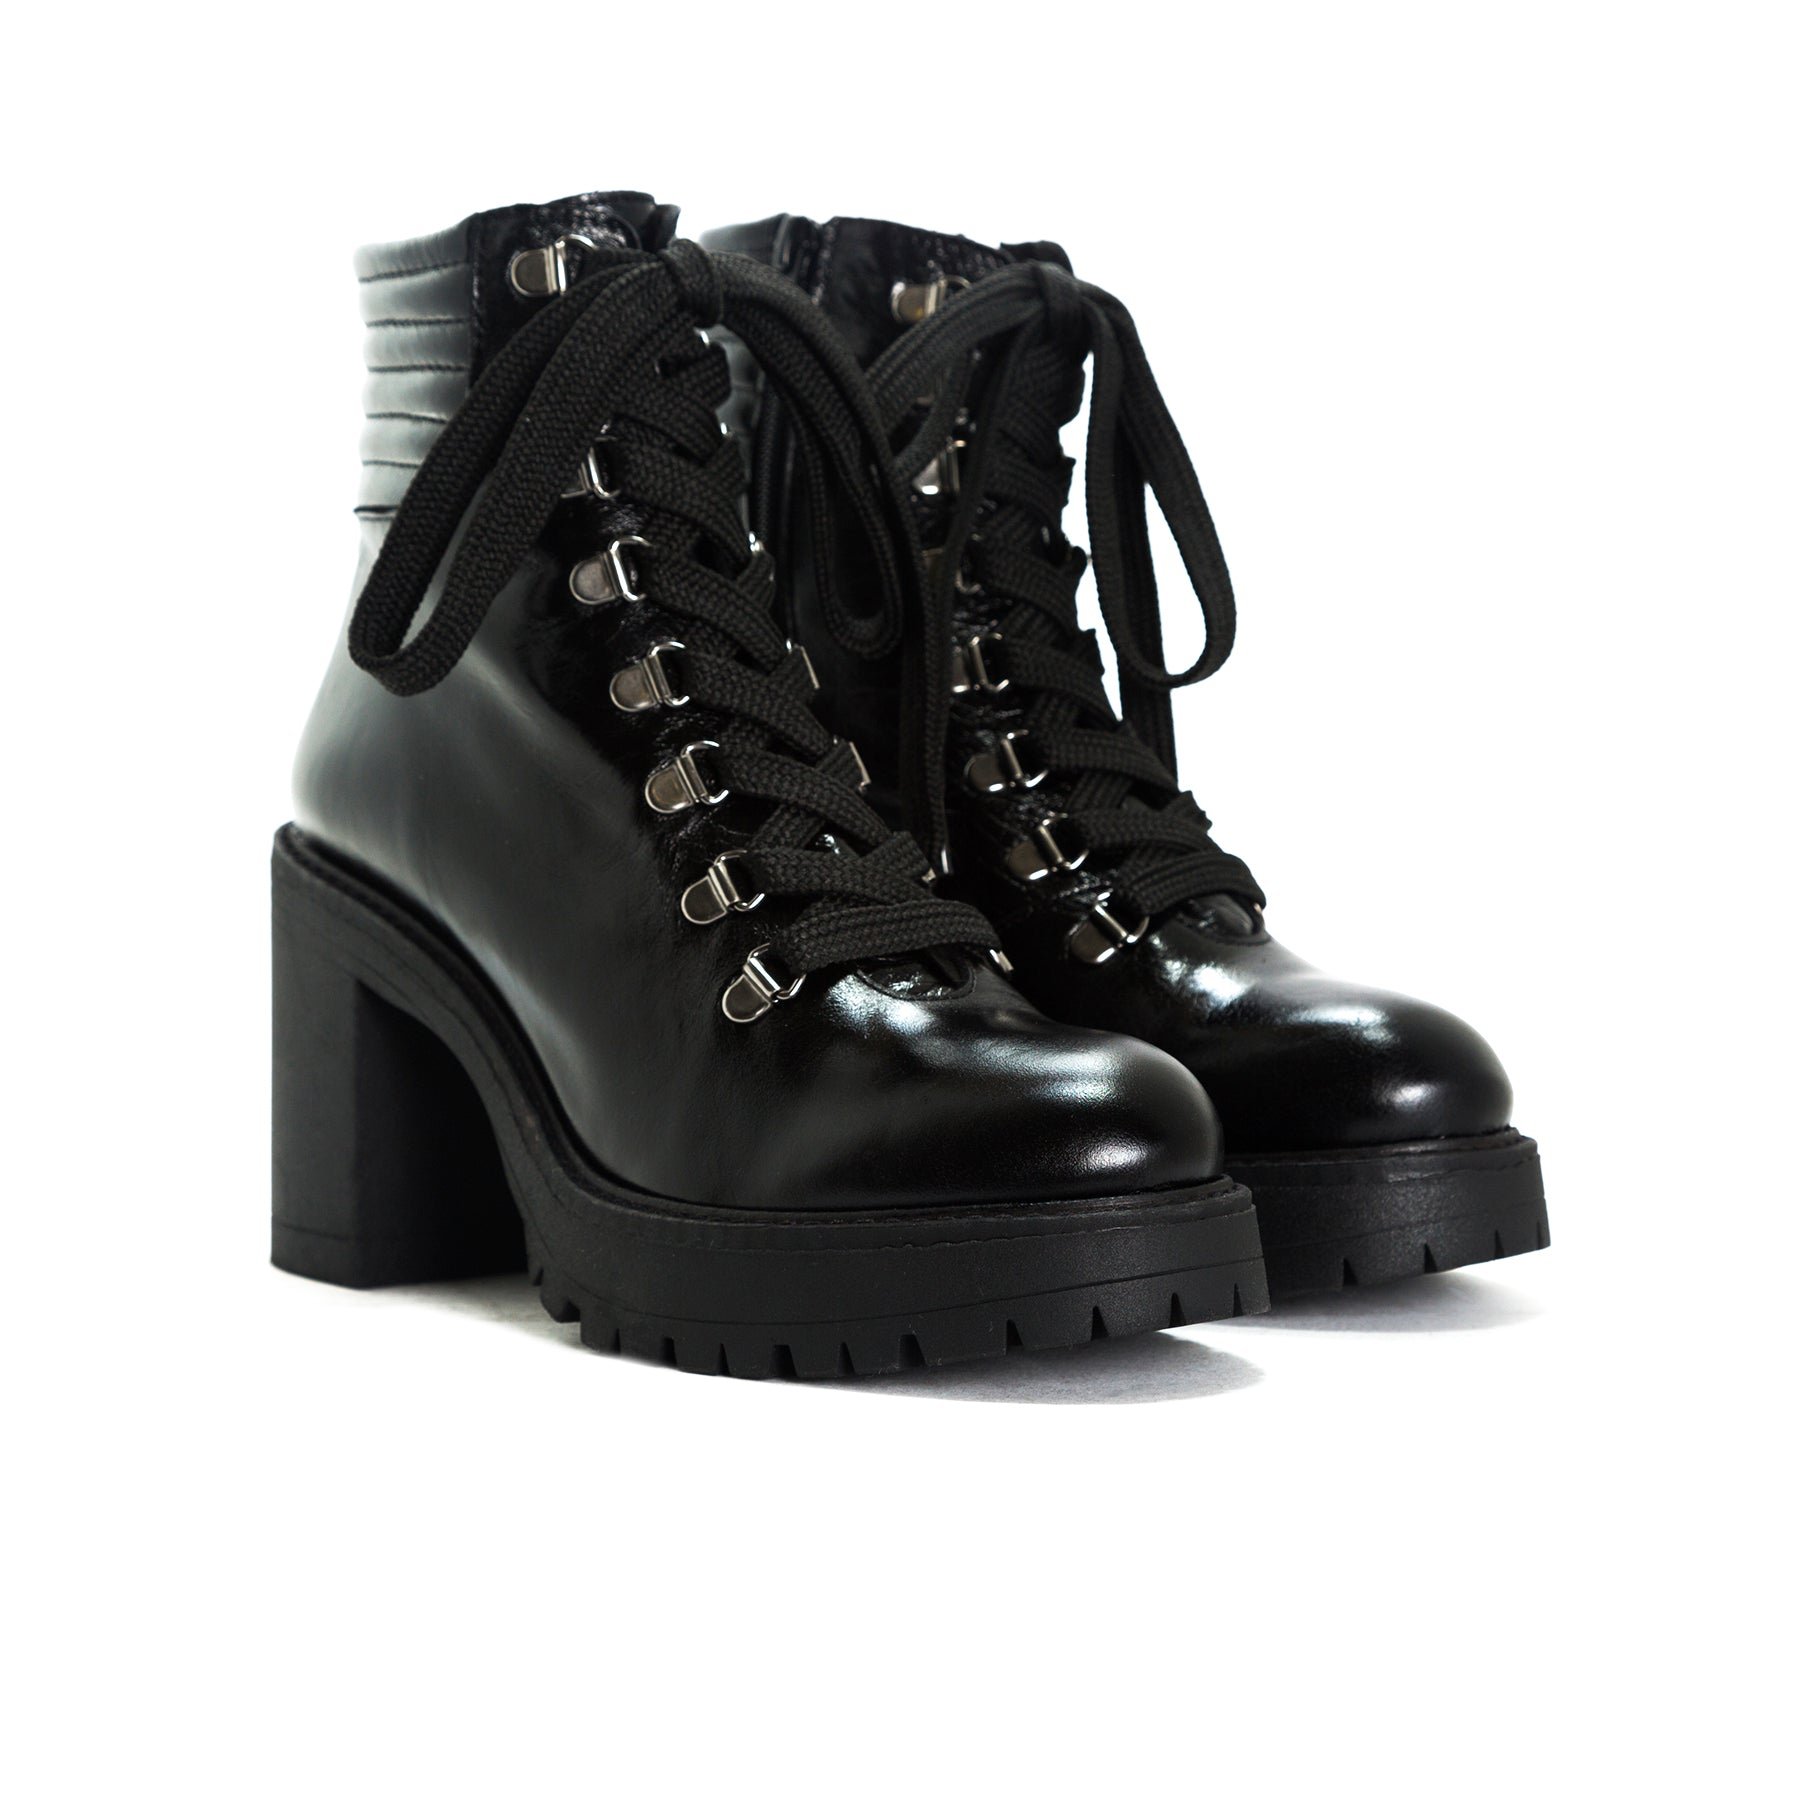 Sickla Black Leather Platforms